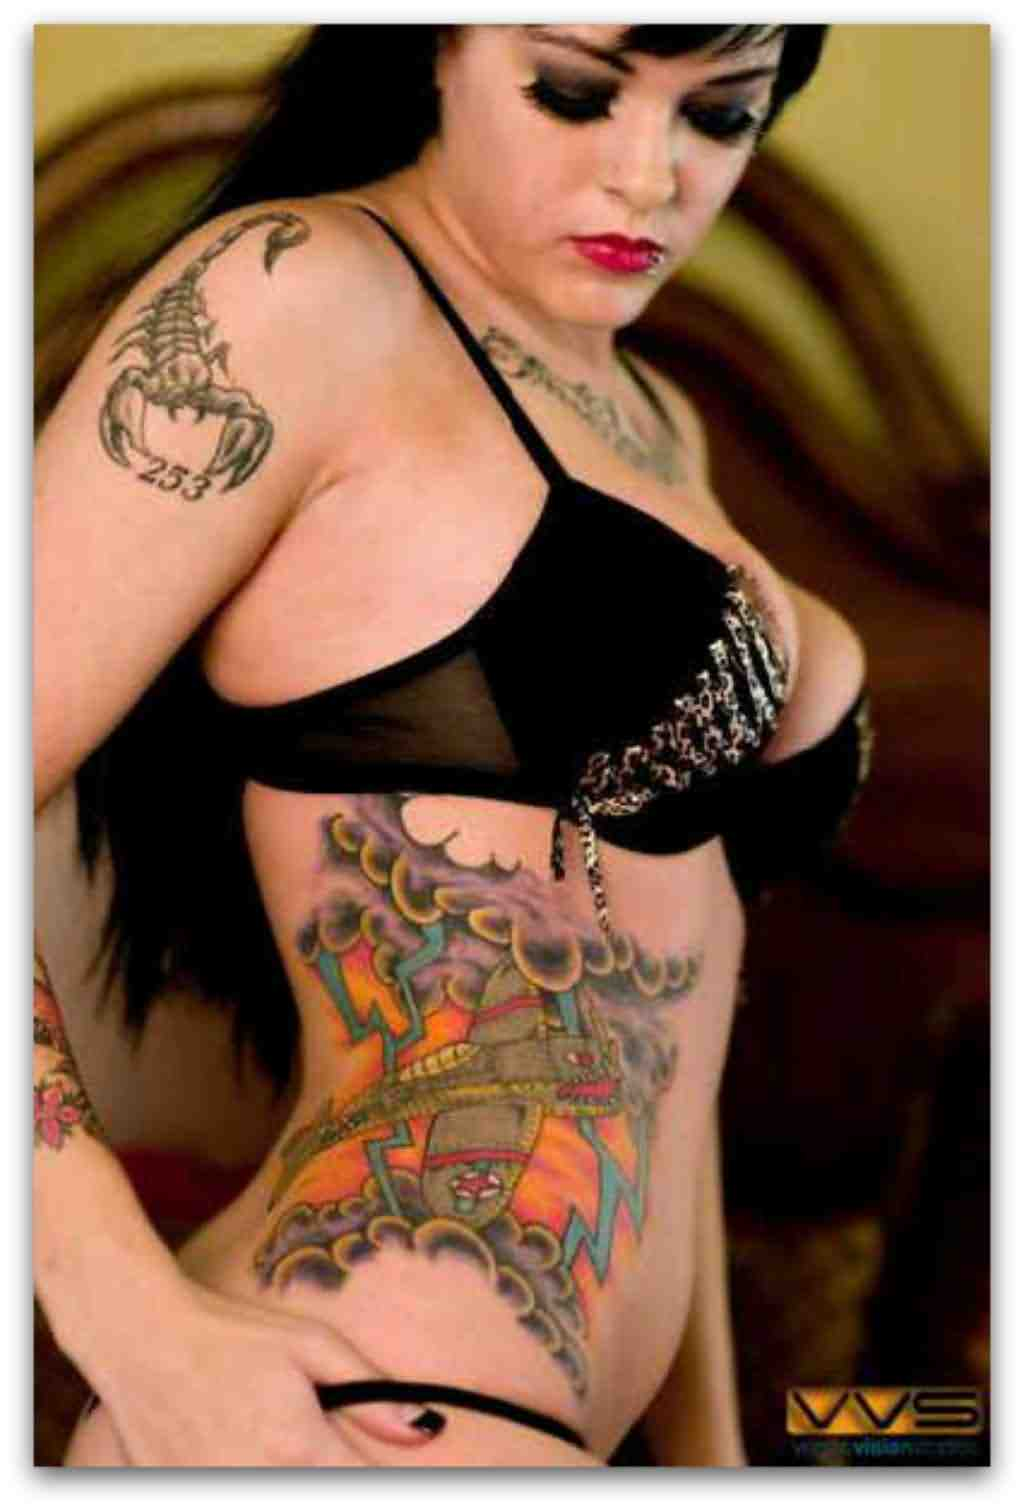 Hot Lady With Color 3D Tattoos On Right Side